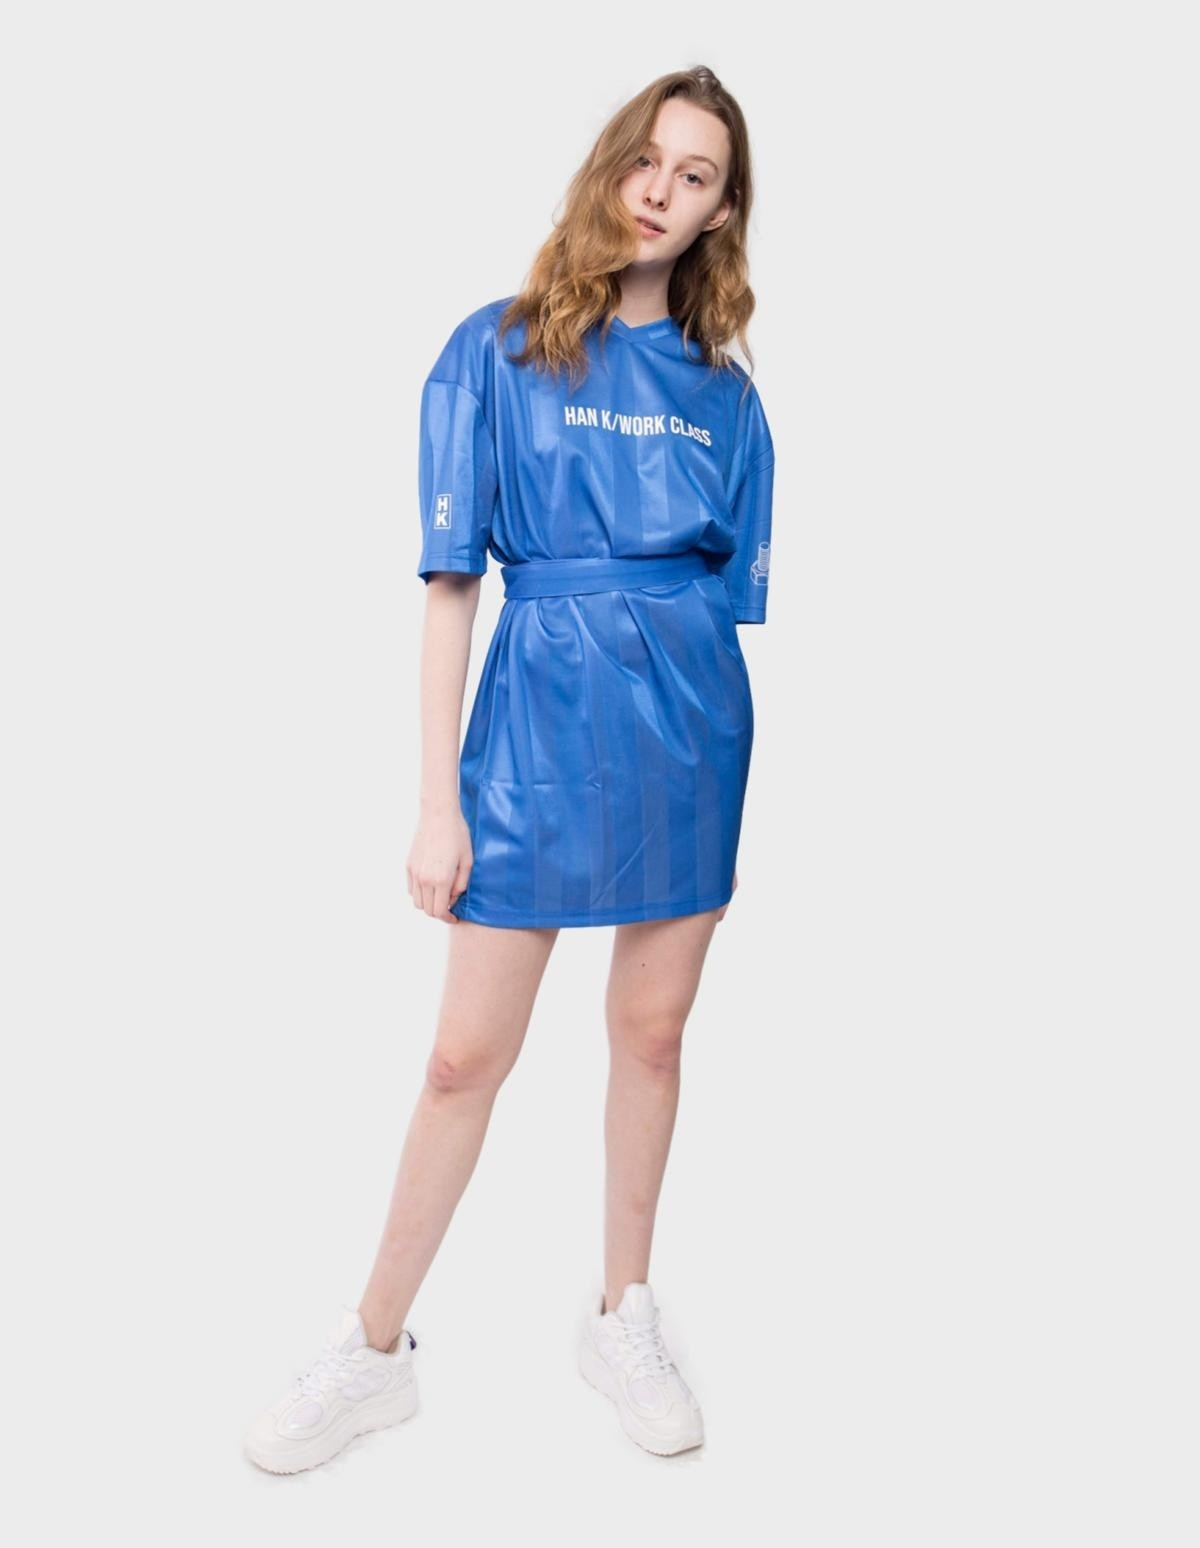 Han Kjøbenhavn Sport Tee Dress in Blue